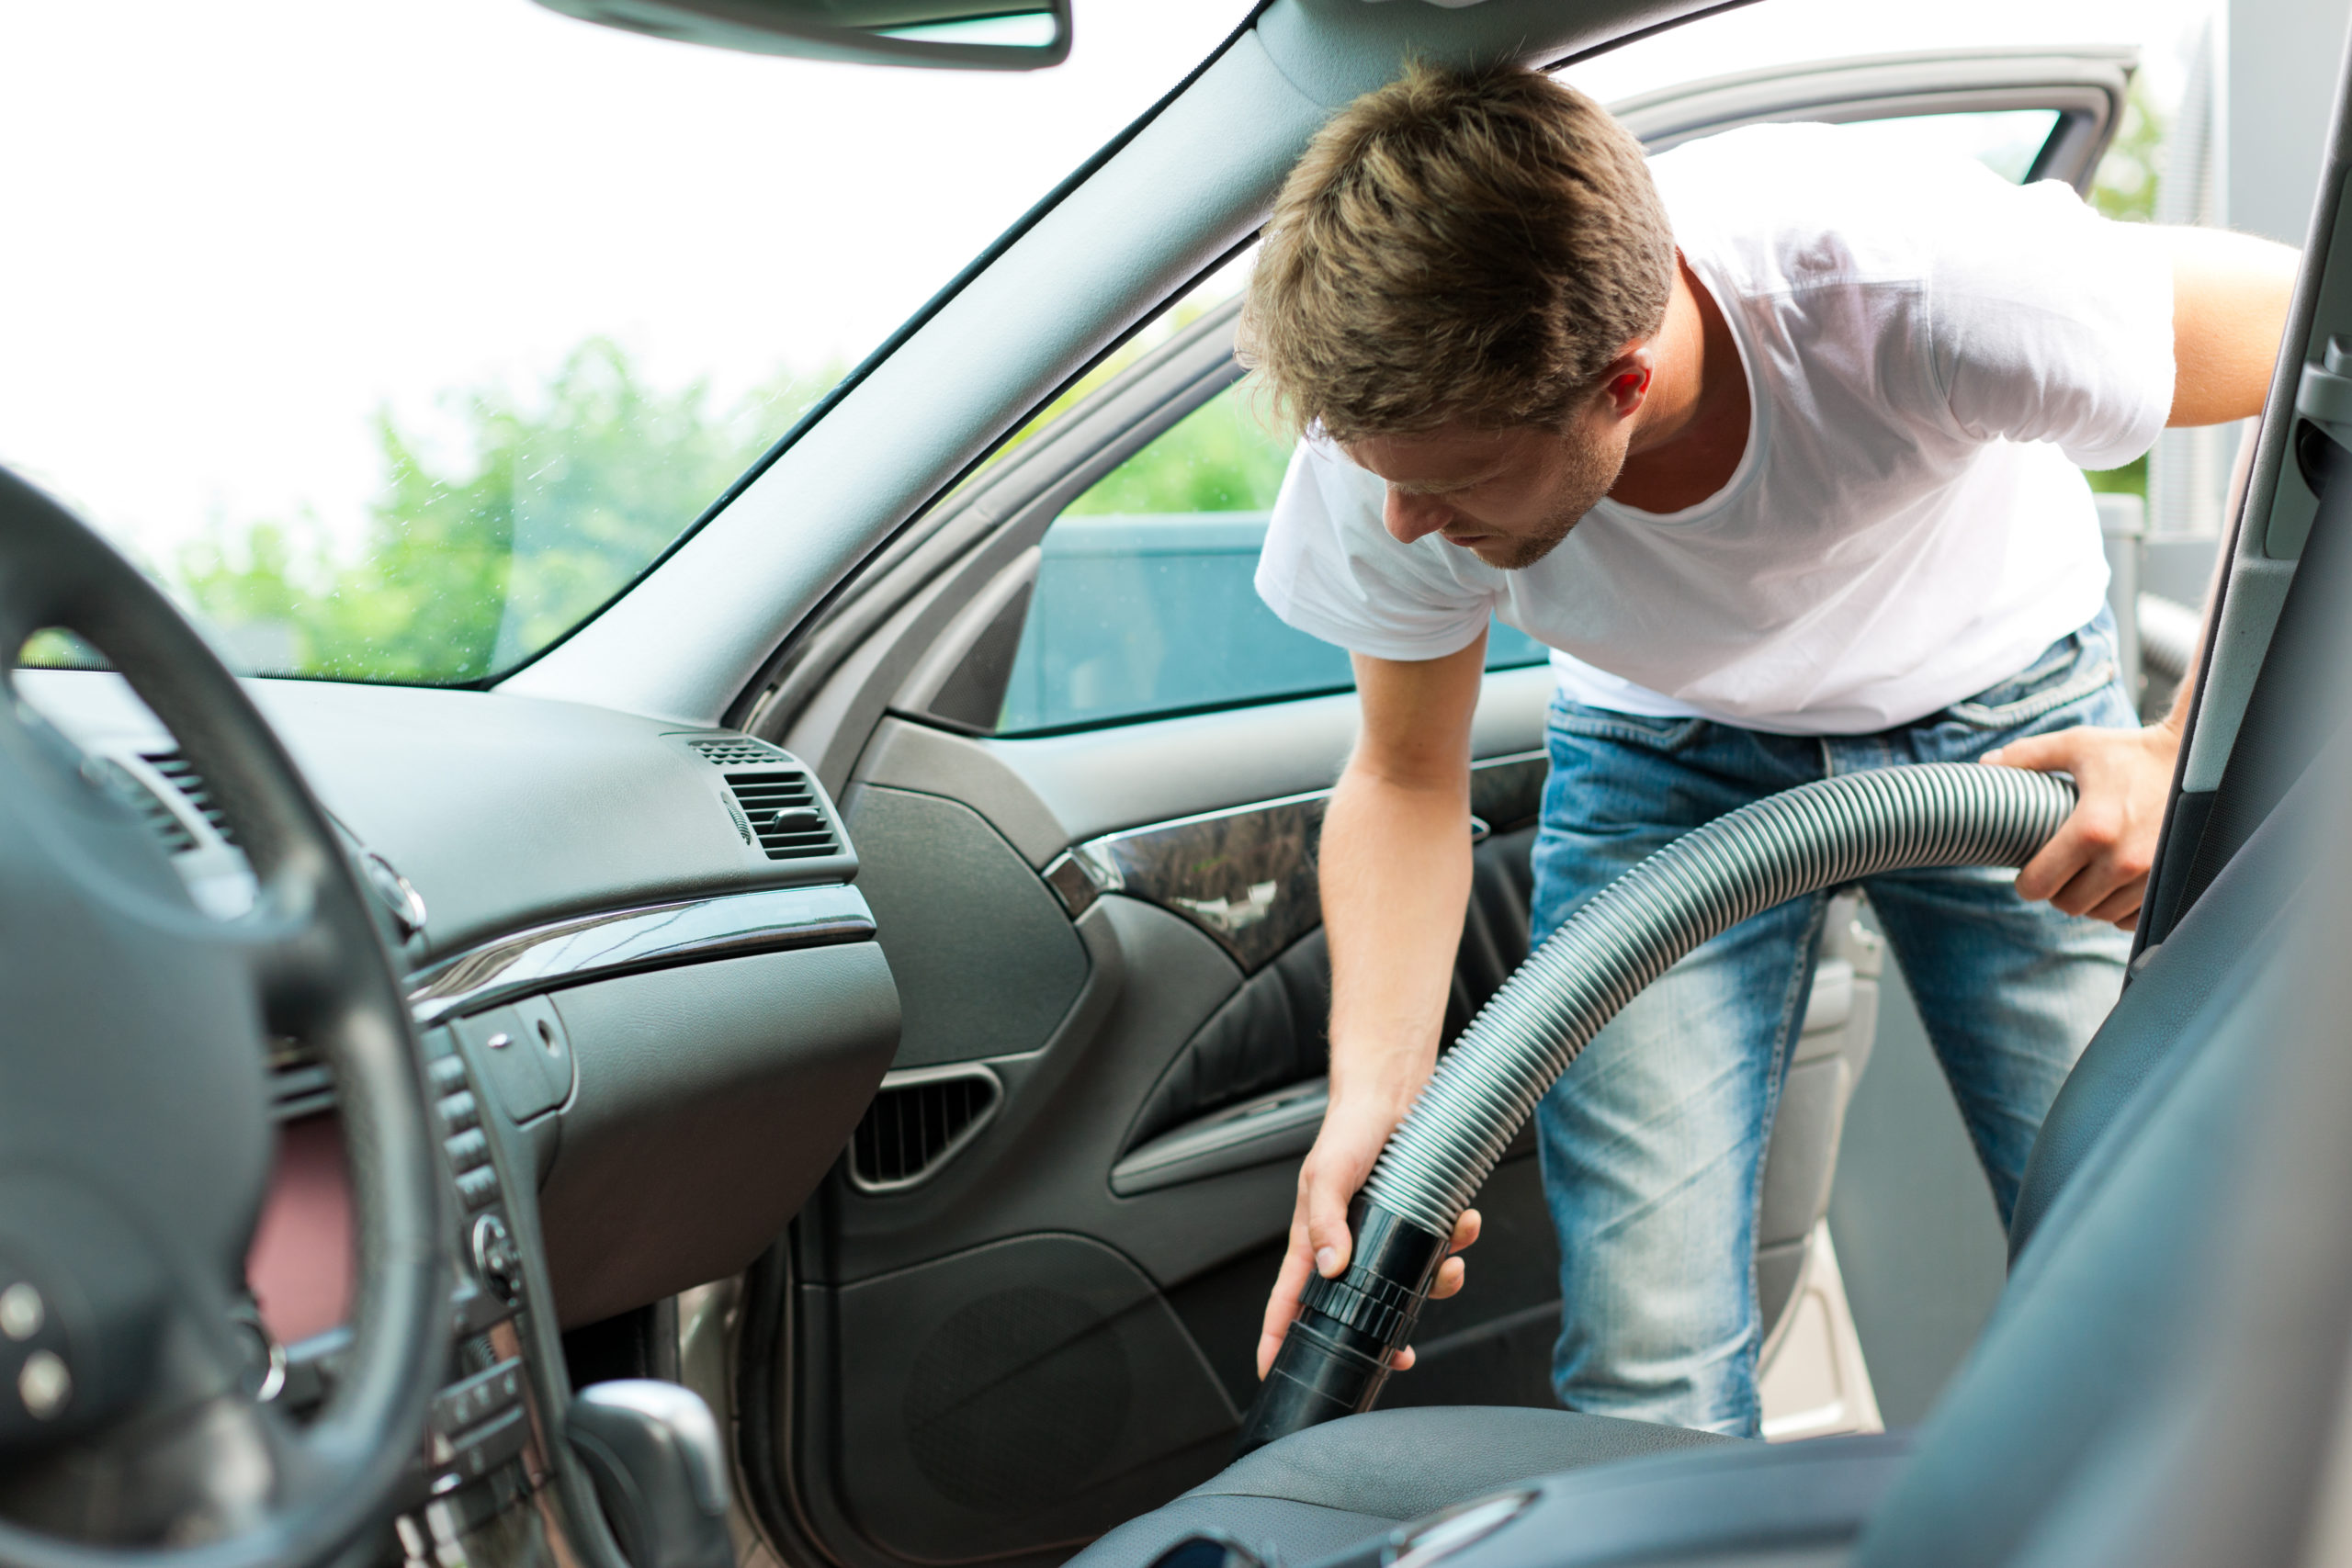 how to detail your car - man vacuums interior of car